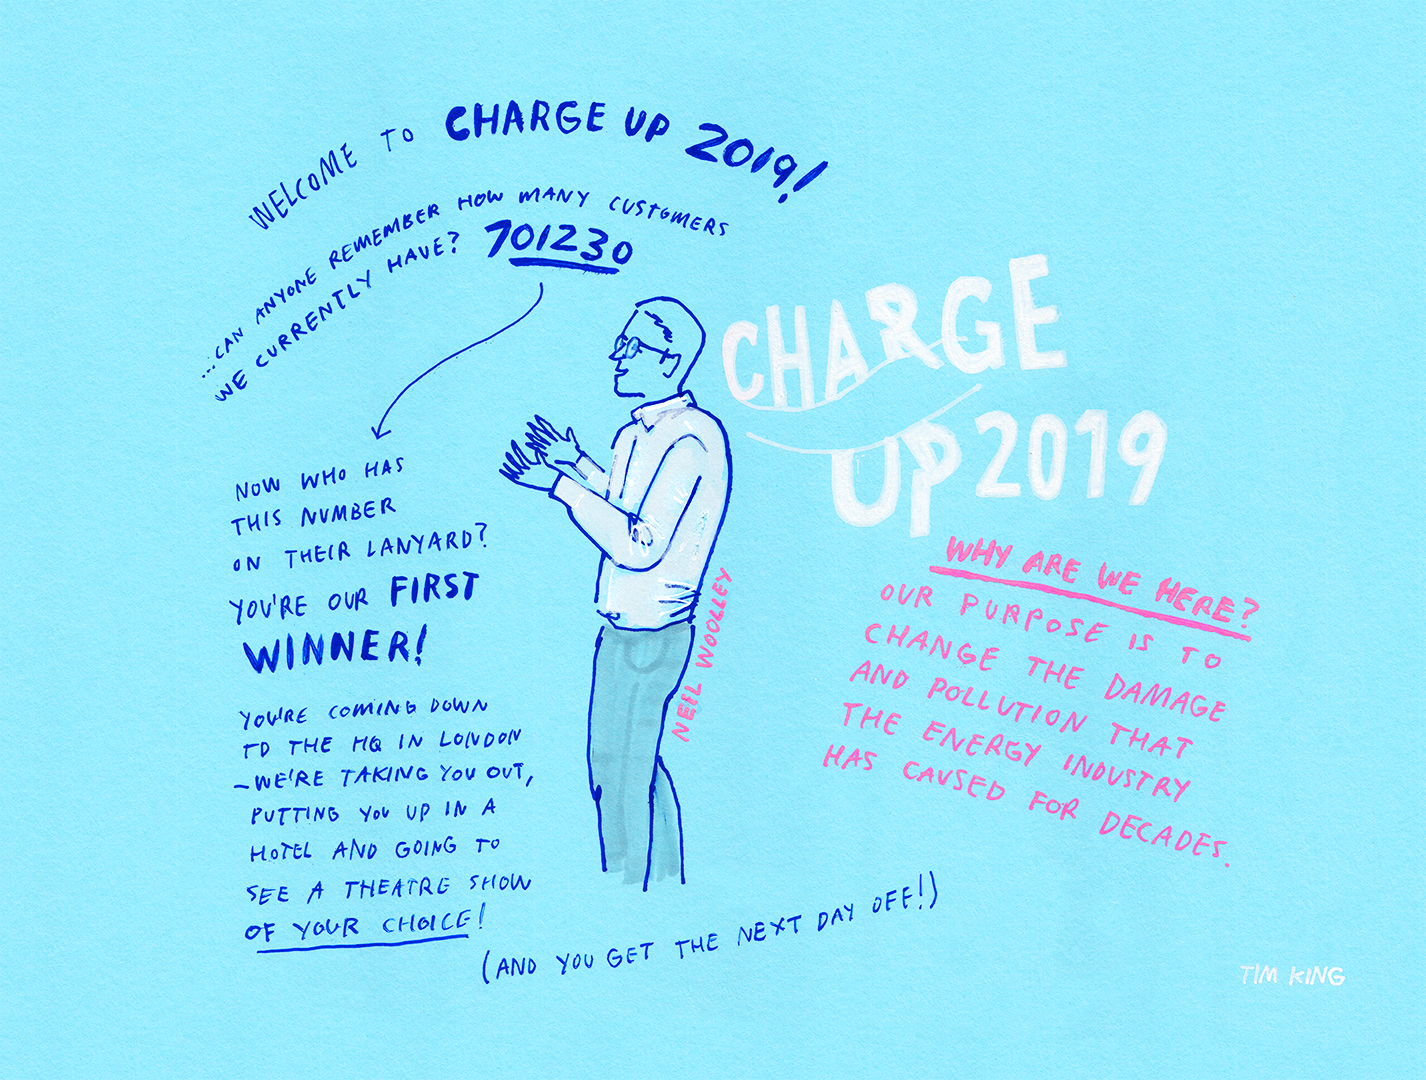 03_Charge-Up_2019.05.22_Welcome